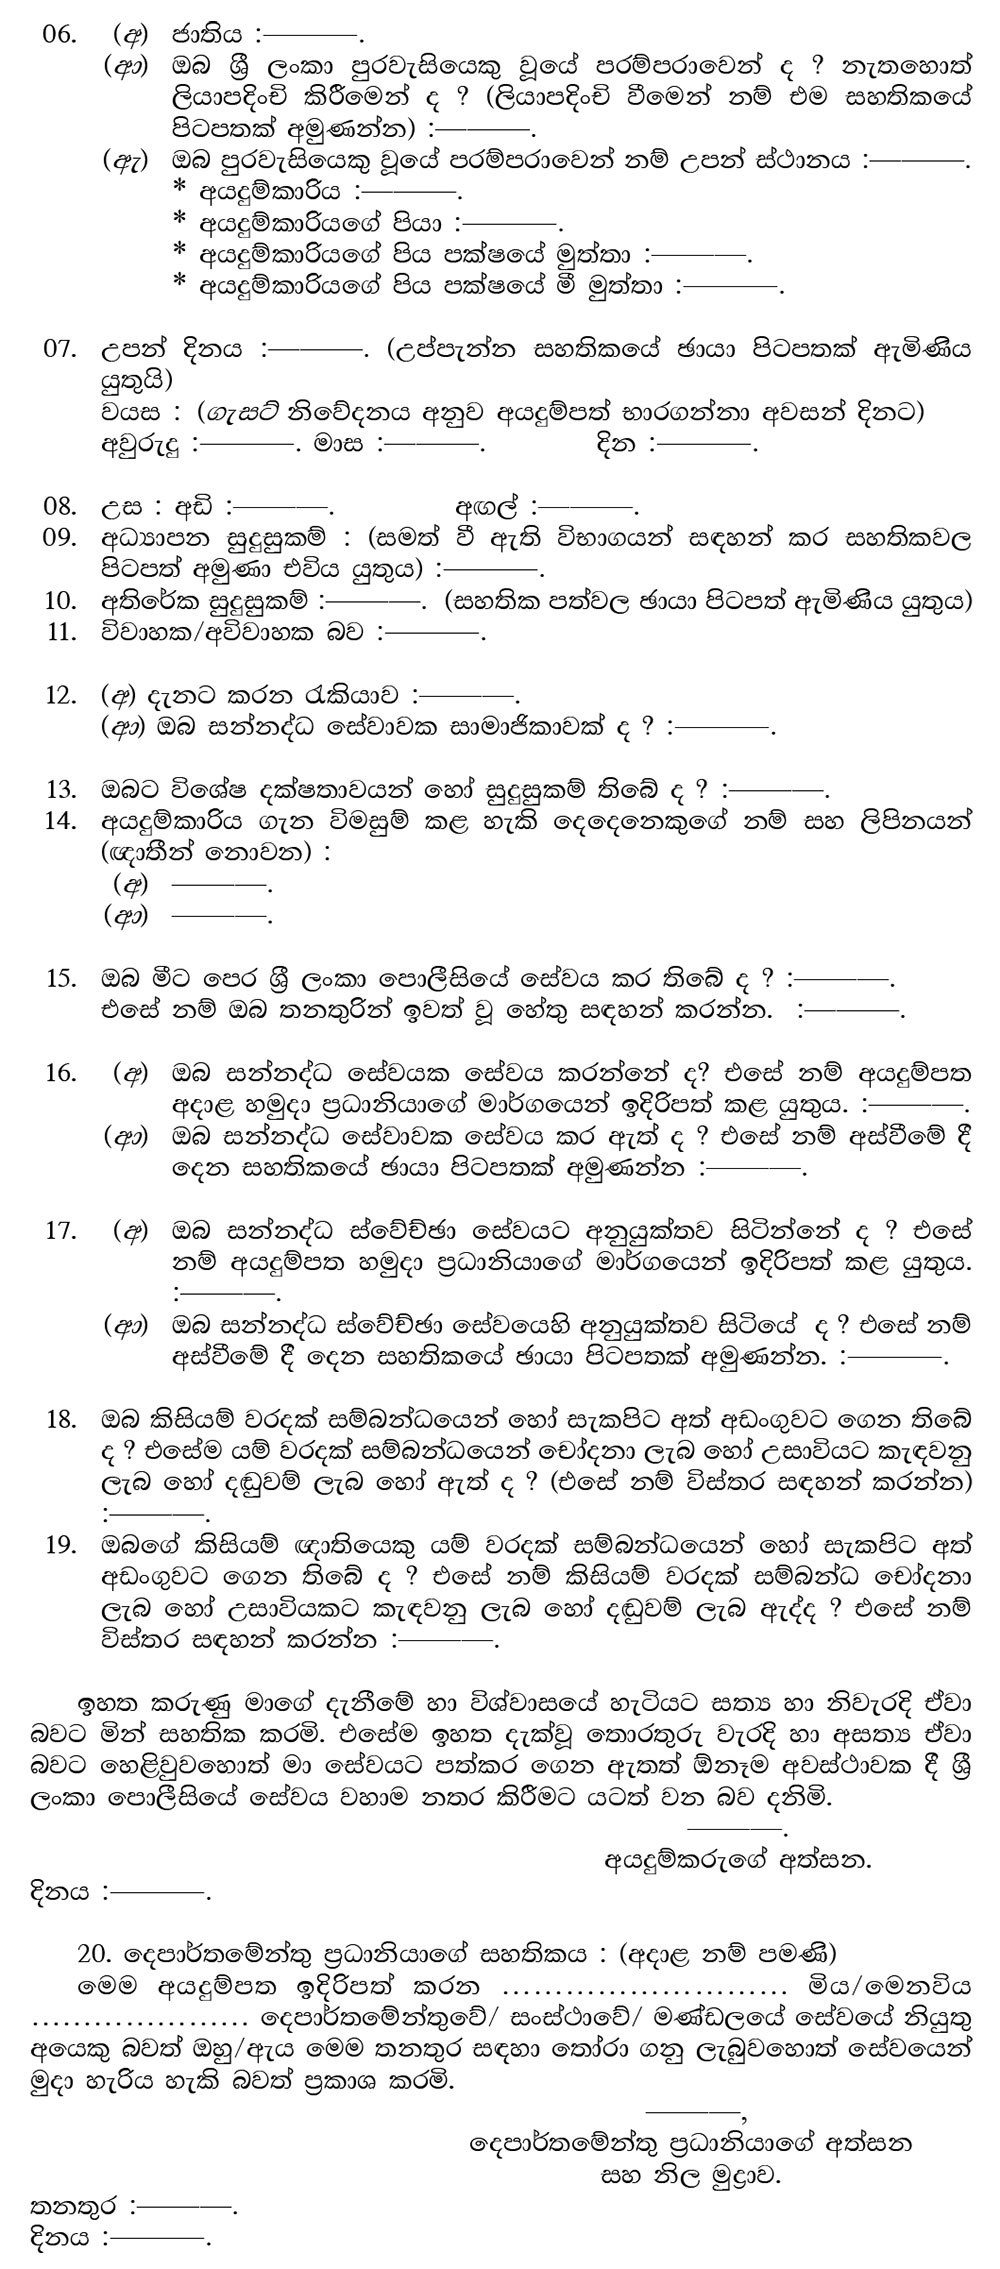 Women Police Constable - Special Task Force - Sri Lanka Police Department